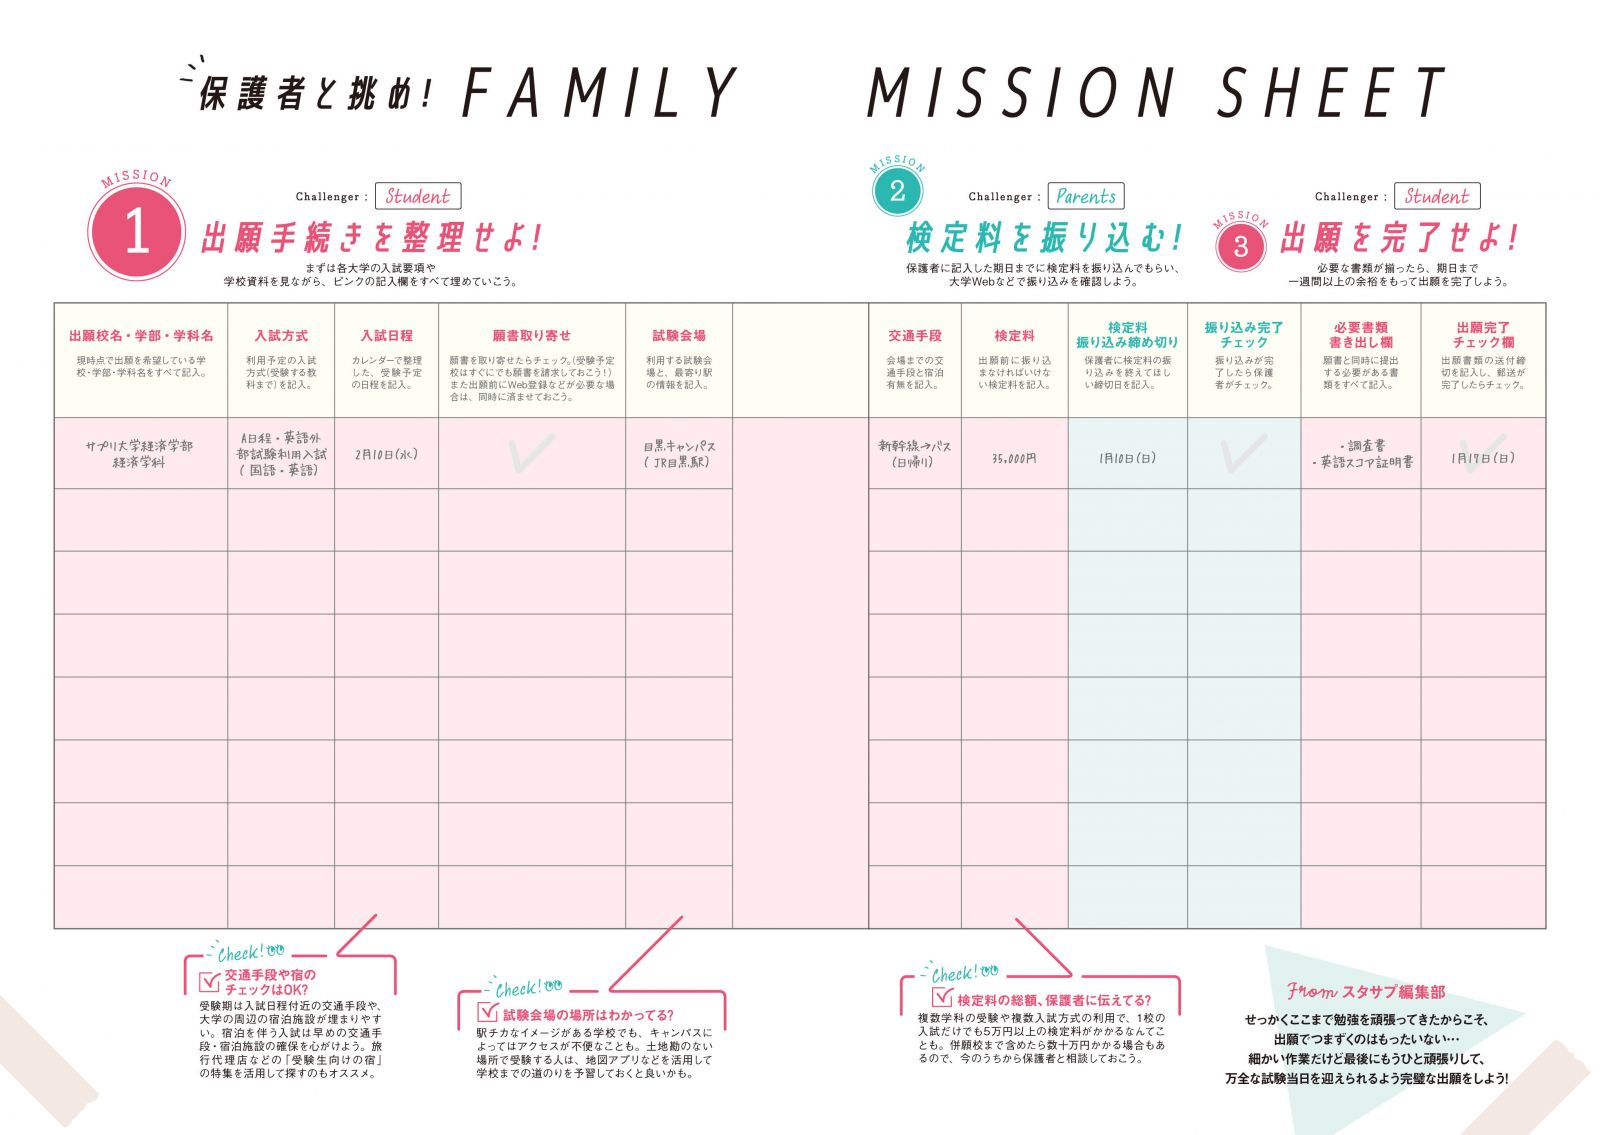 FAMILY MISSION SHEET